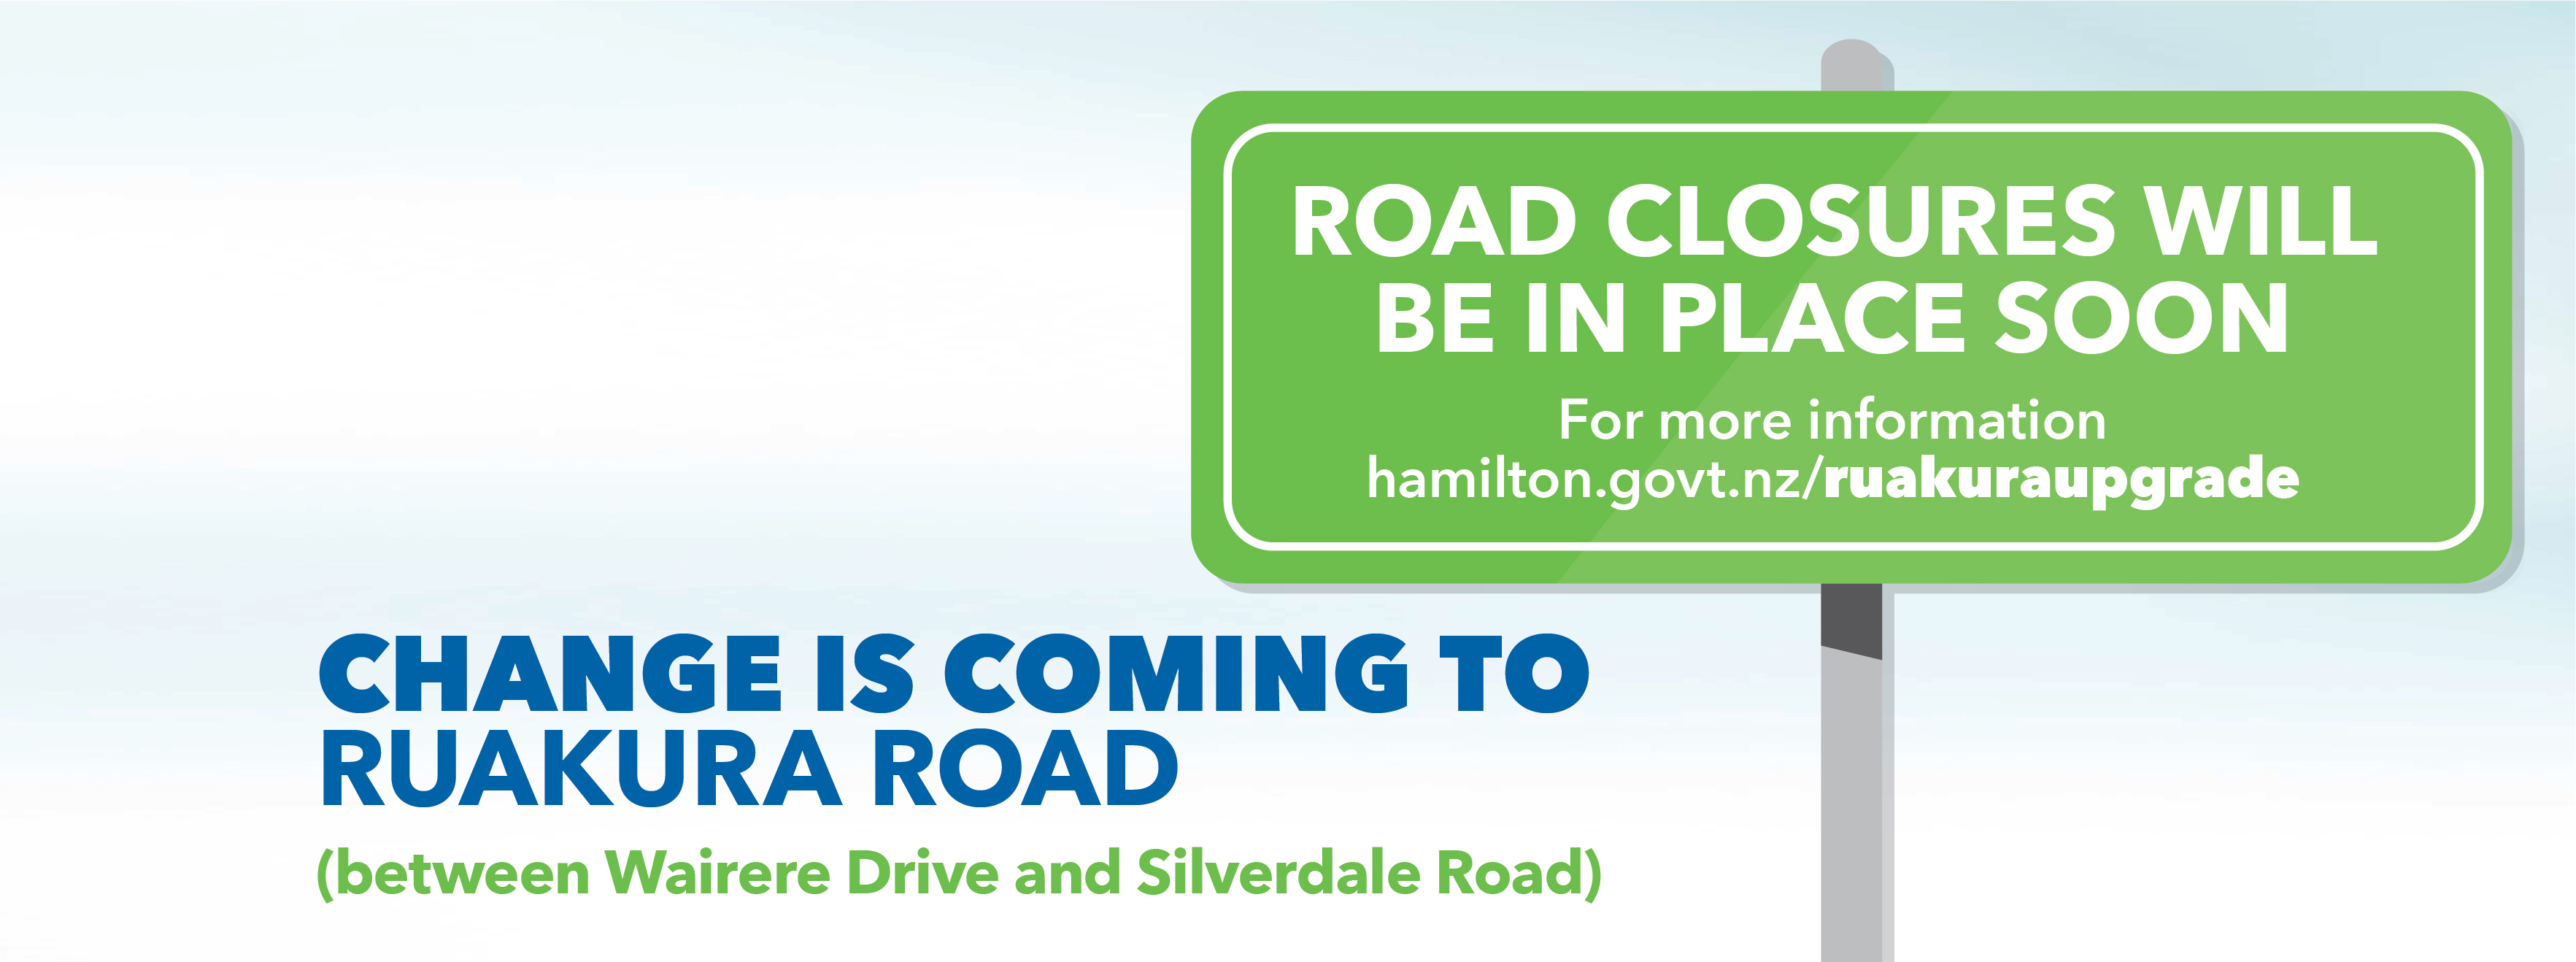 Change is coming to Ruakura Road (between Wairere Drive and Silverdale Road) Road closures will be in place soon. For more information hamilton.govt.nz/ruakuraupgrade